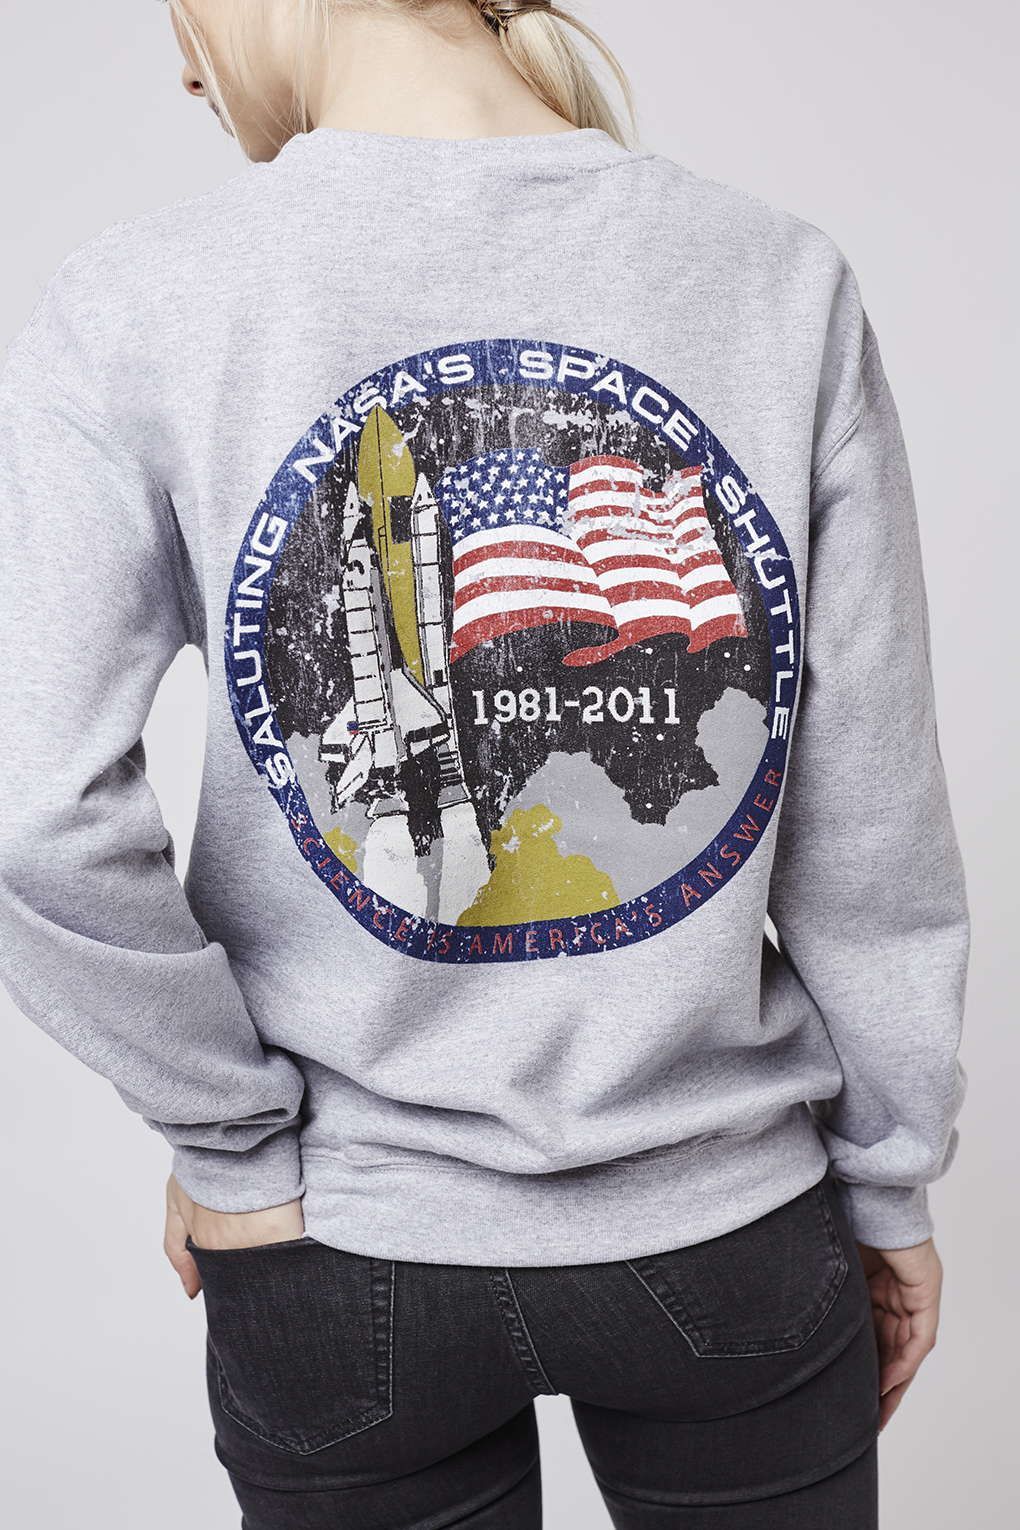 Nasa Distressed Sweater by Tee   Cake - Brands at Topshop - Clothing e0602a47a320